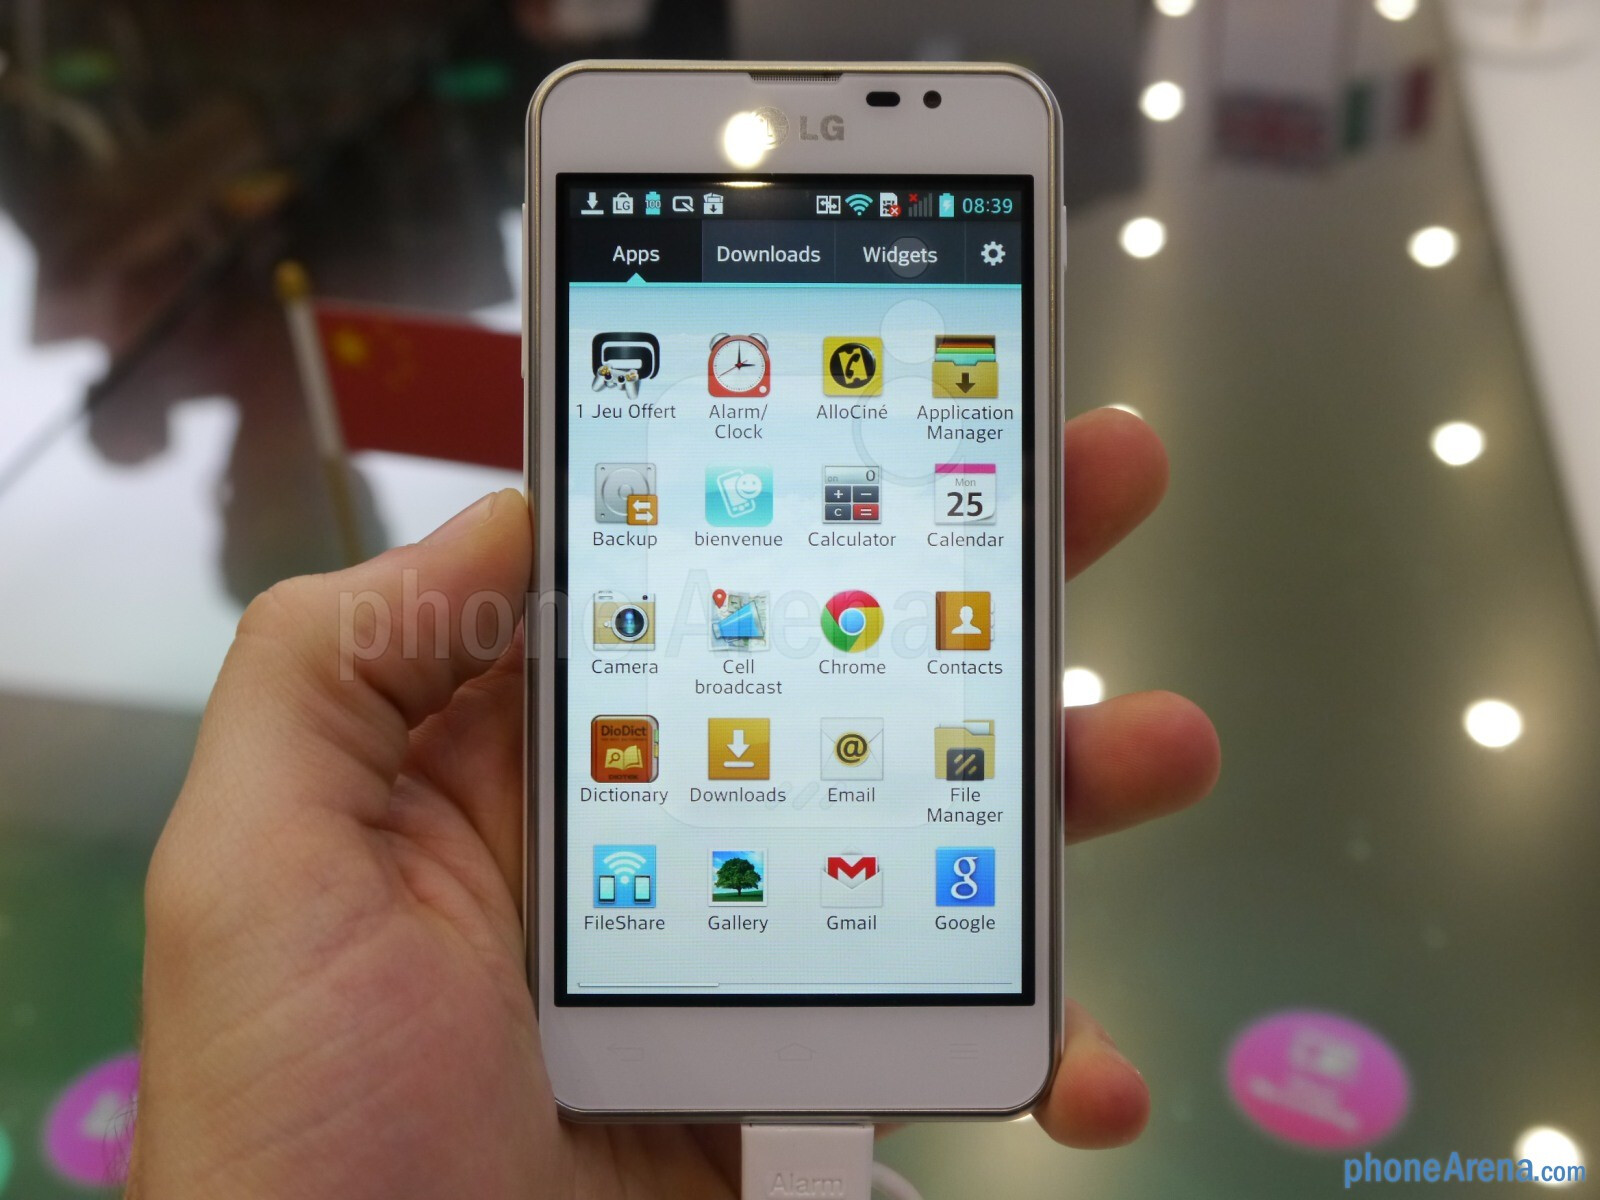 LG Optimus F5 hands-on